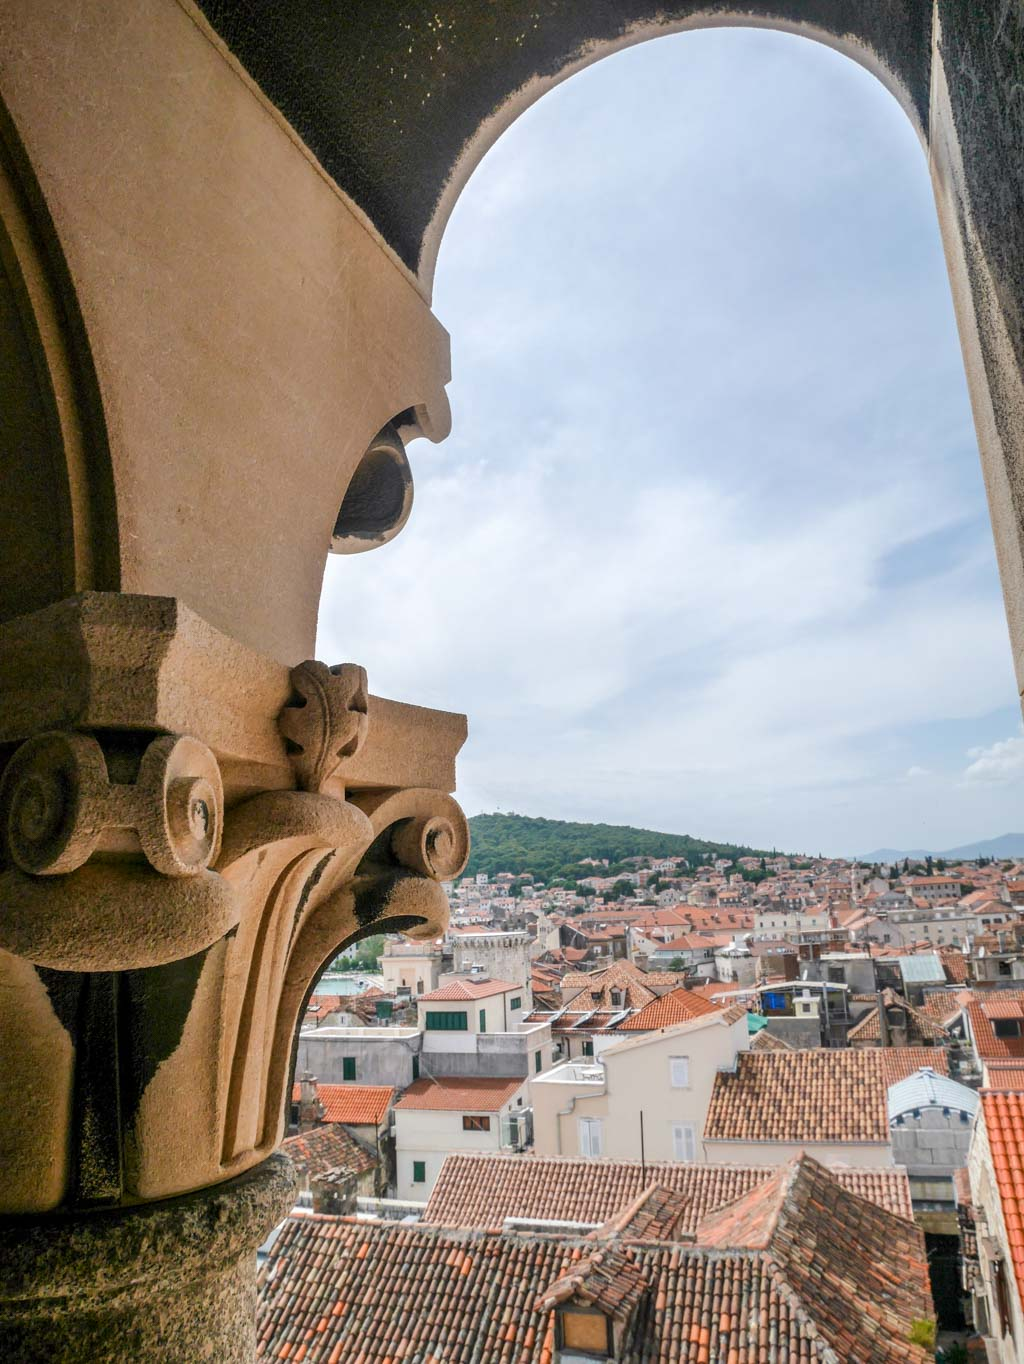 glimpses of split up the The Cathedral of St Dominus tower diocletians palace split croatia